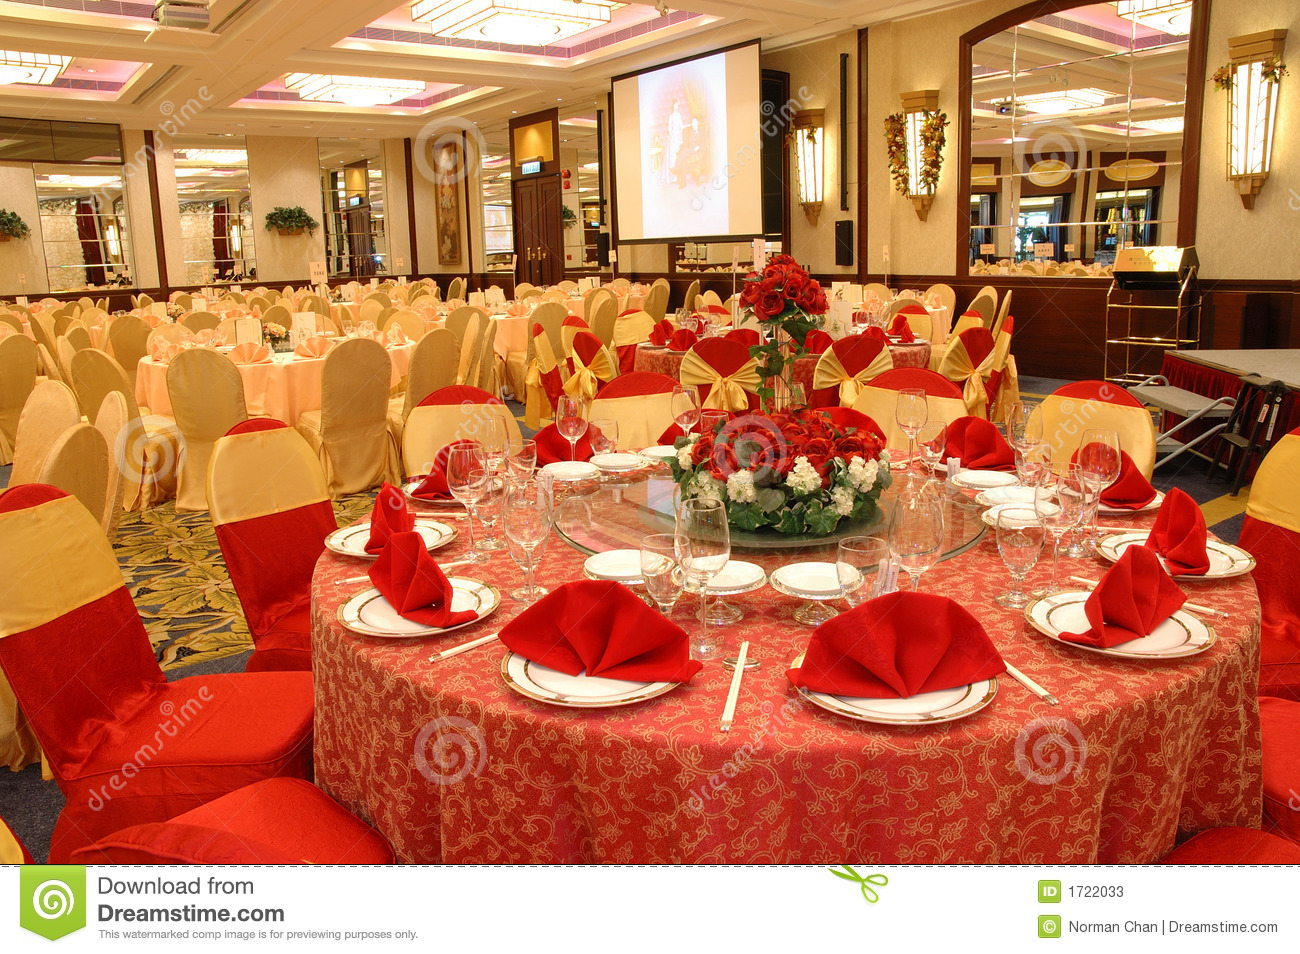 Table Setting In Wedding Banquet Stock Photos - Image: 1722033